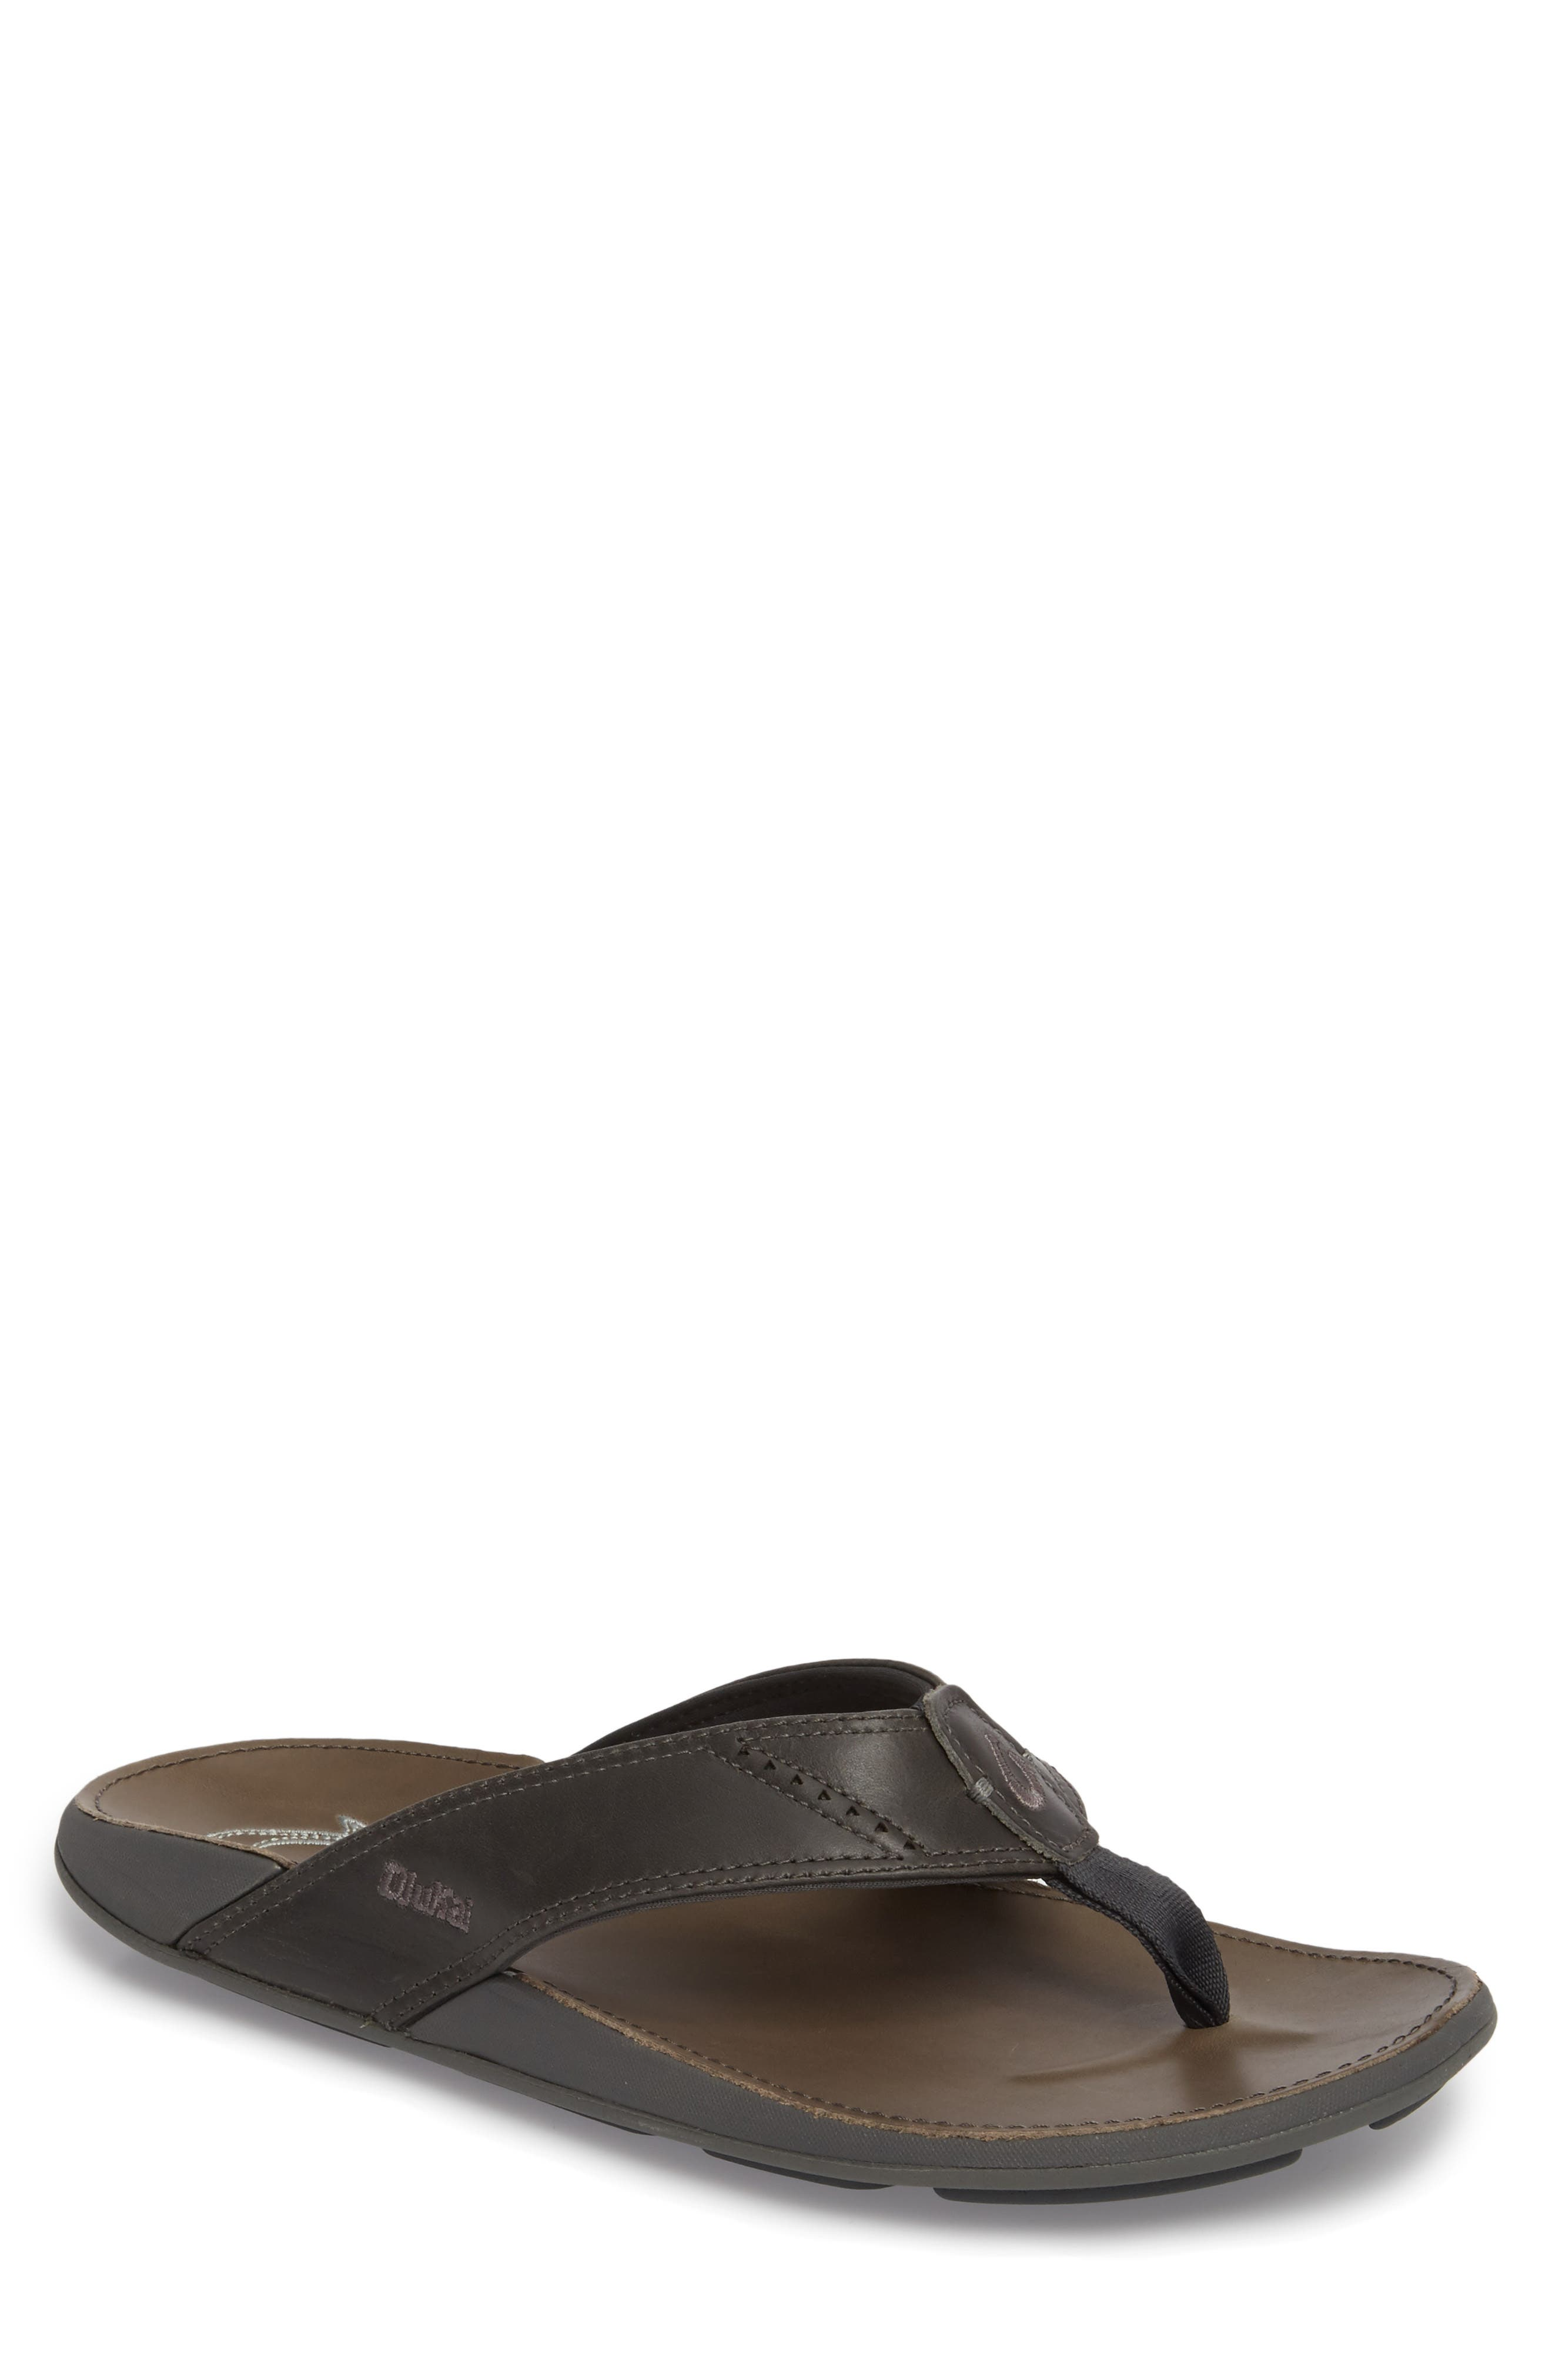 'Nui' Leather Flip Flop,                             Main thumbnail 1, color,                             DARK SHADOW/ CHARCOAL LEATHER